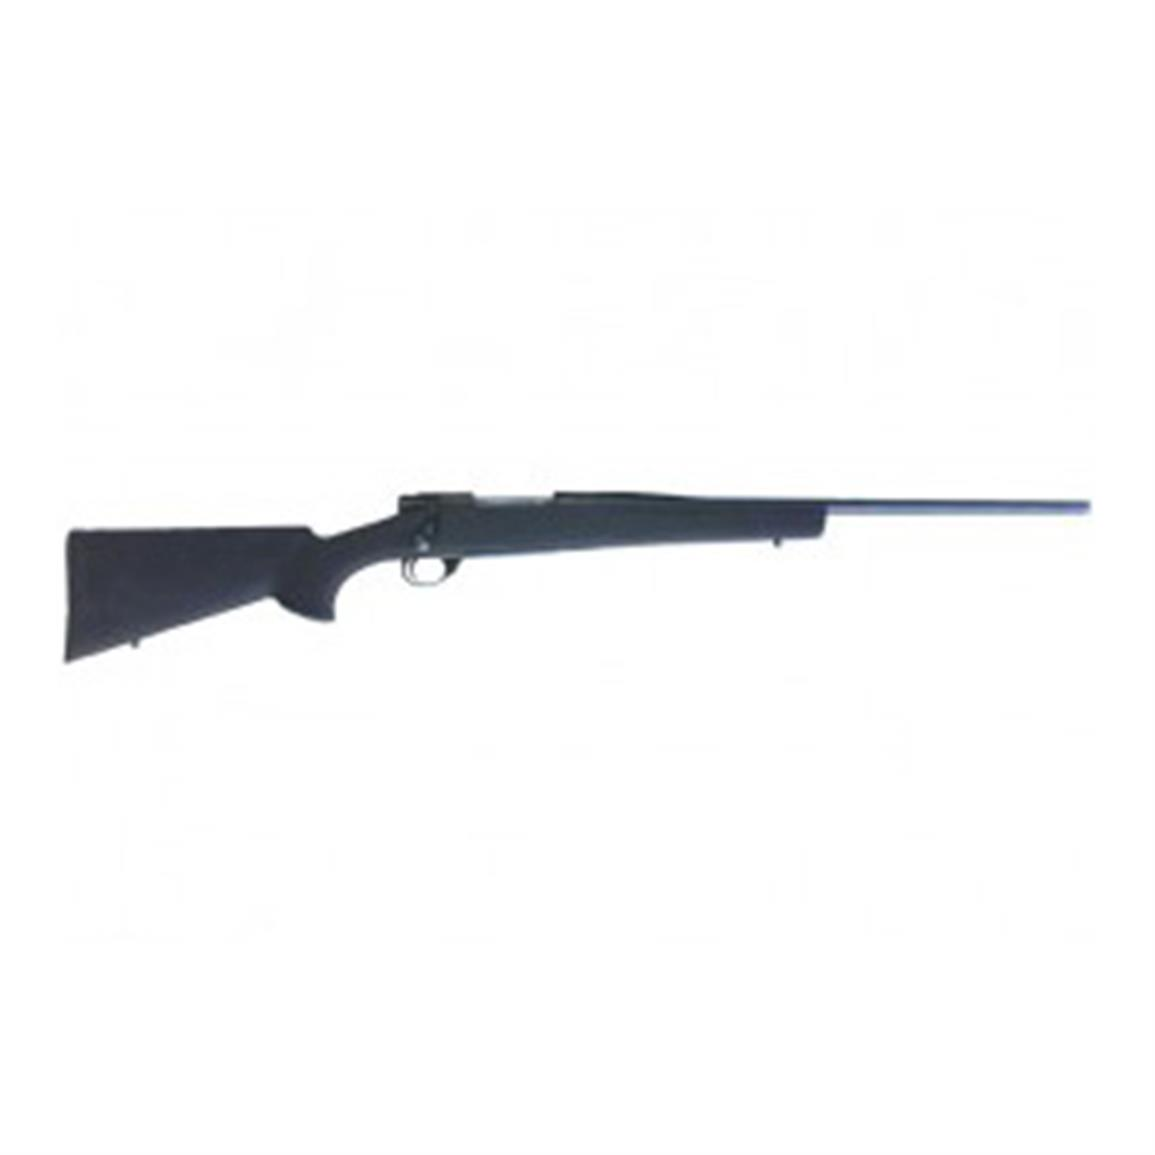 "LSI Howa Hogue, Bolt Action, .30-06 Springfield, 22"" Barrel, 6+1 Rounds"